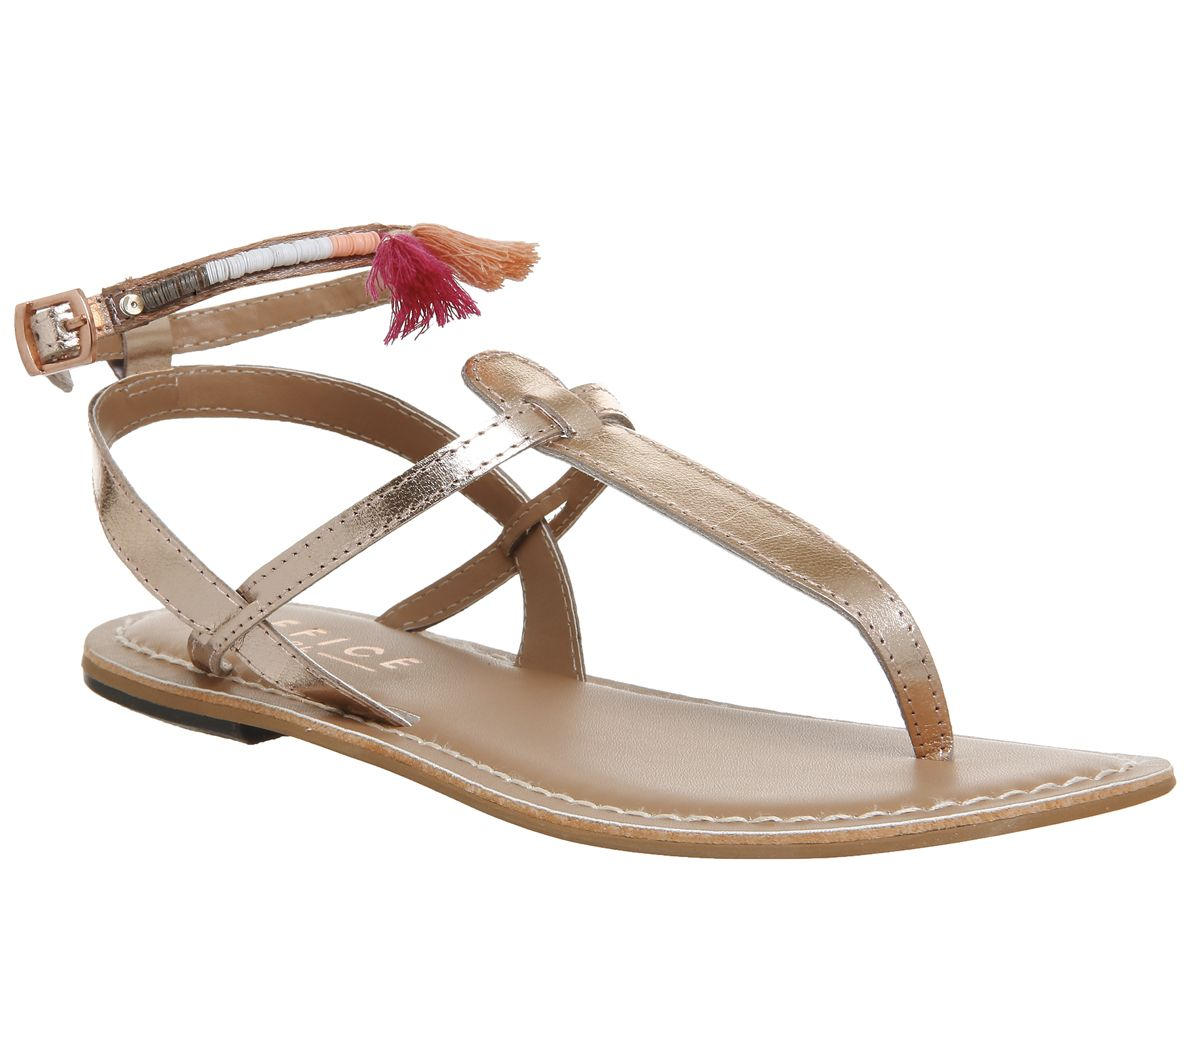 0fc0f8bc132a Office Salsa Tassel Ankle Strap Toe Post Sandals Rose Gold Leather ...